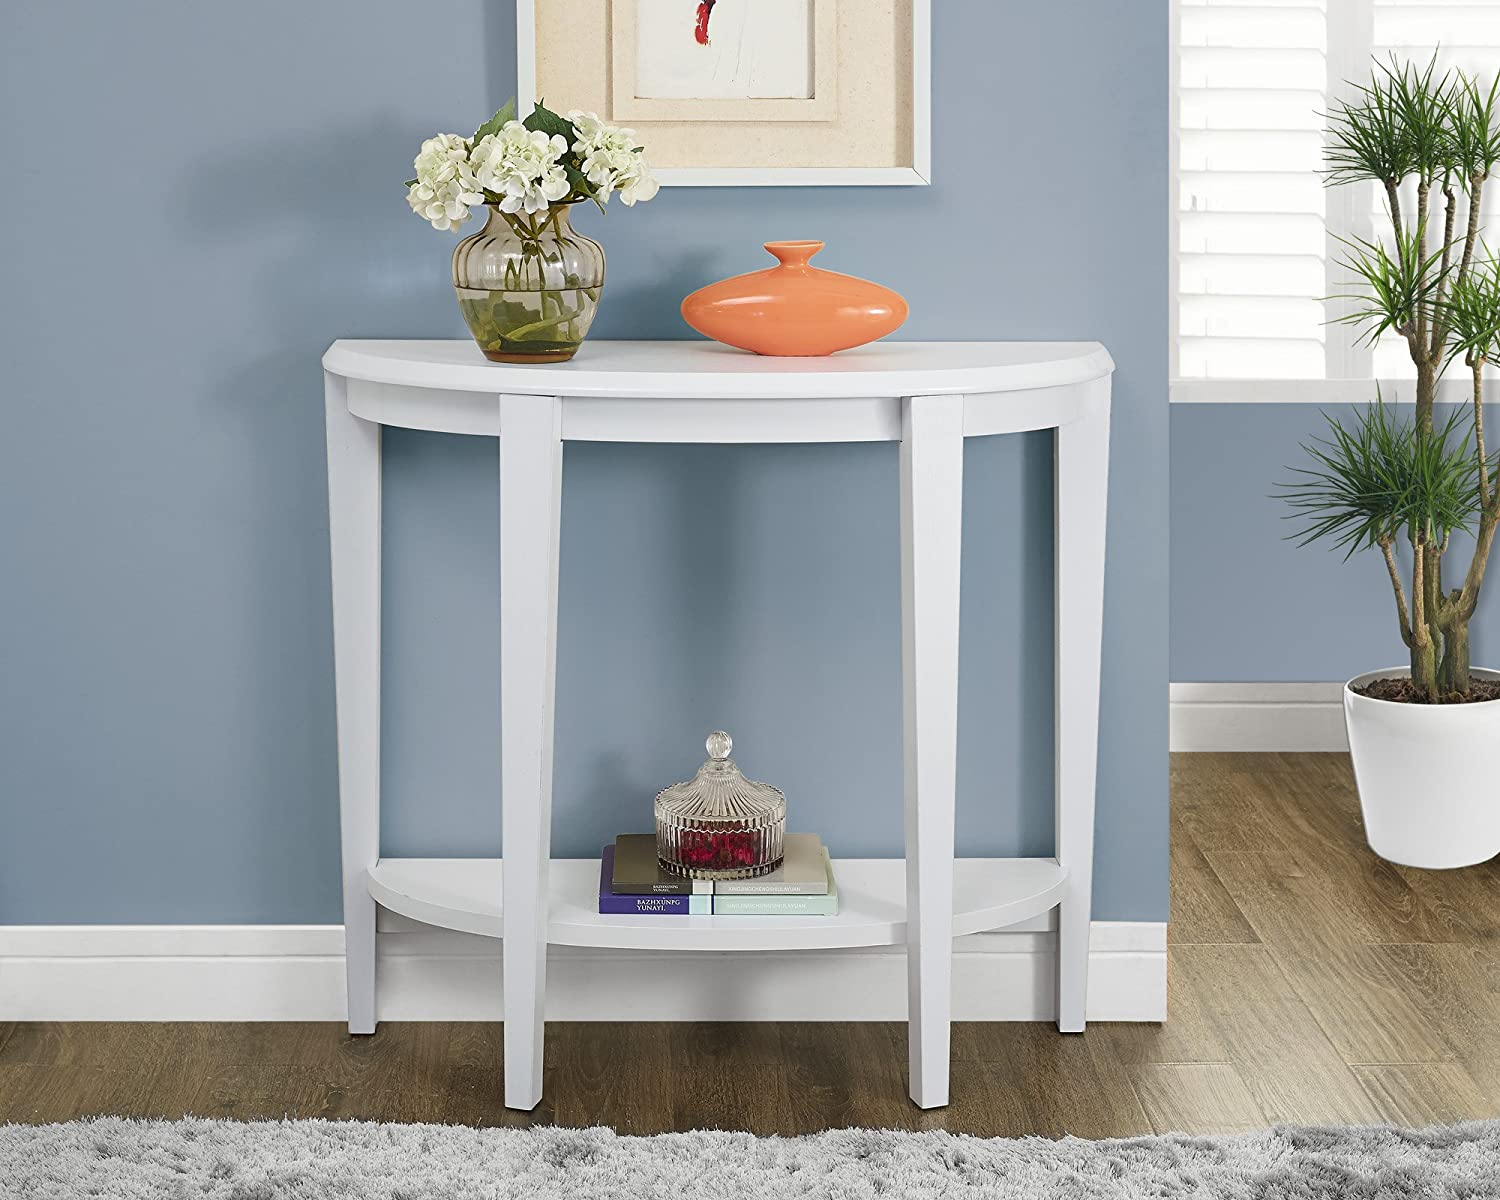 Amazon monarch specialties white hall console accent table amazon monarch specialties white hall console accent table 36 inch kitchen dining geotapseo Image collections